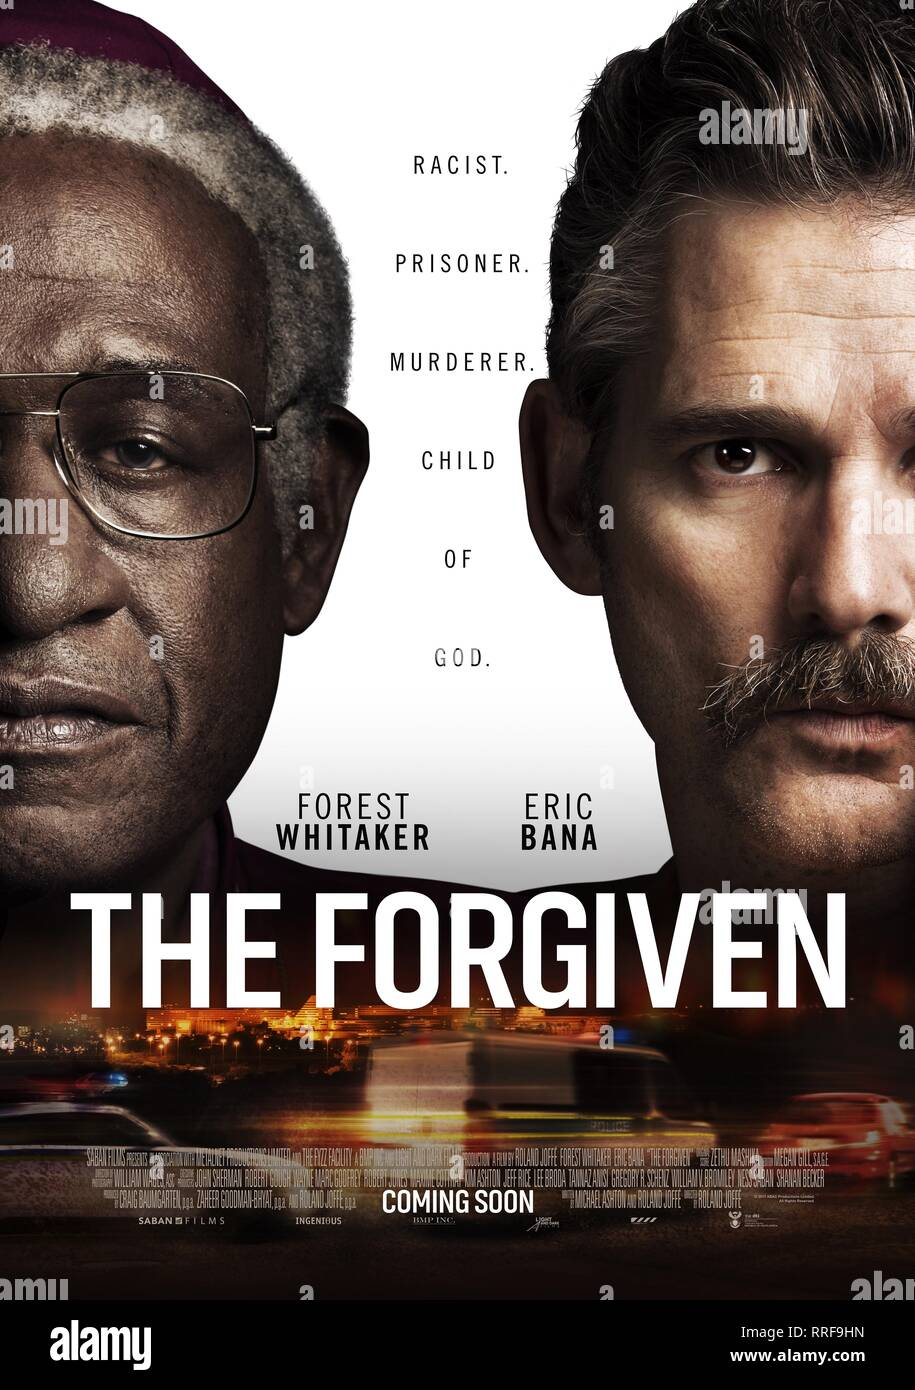 THE FORGIVEN, FOREST WHITAKER , ERIC BANA POSTER, 2017 Stock